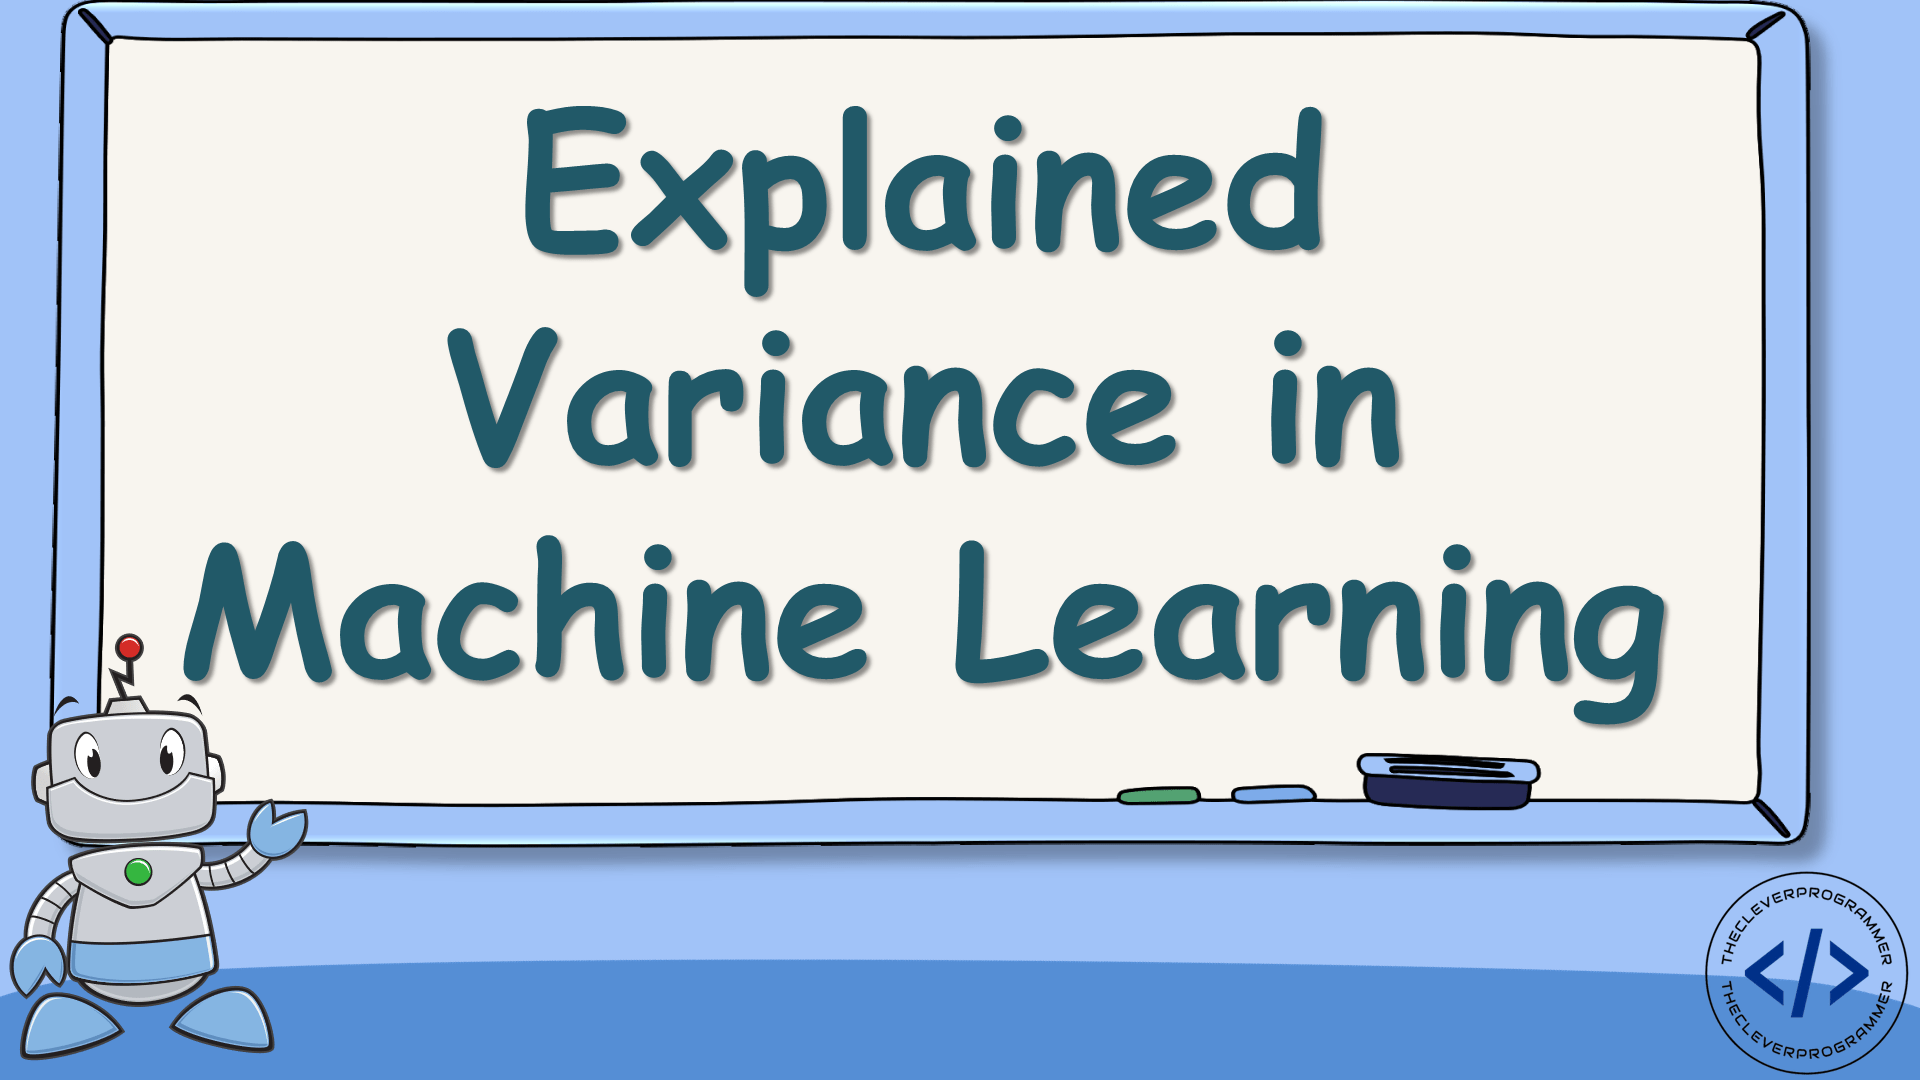 Explained Variance in Machine Learning